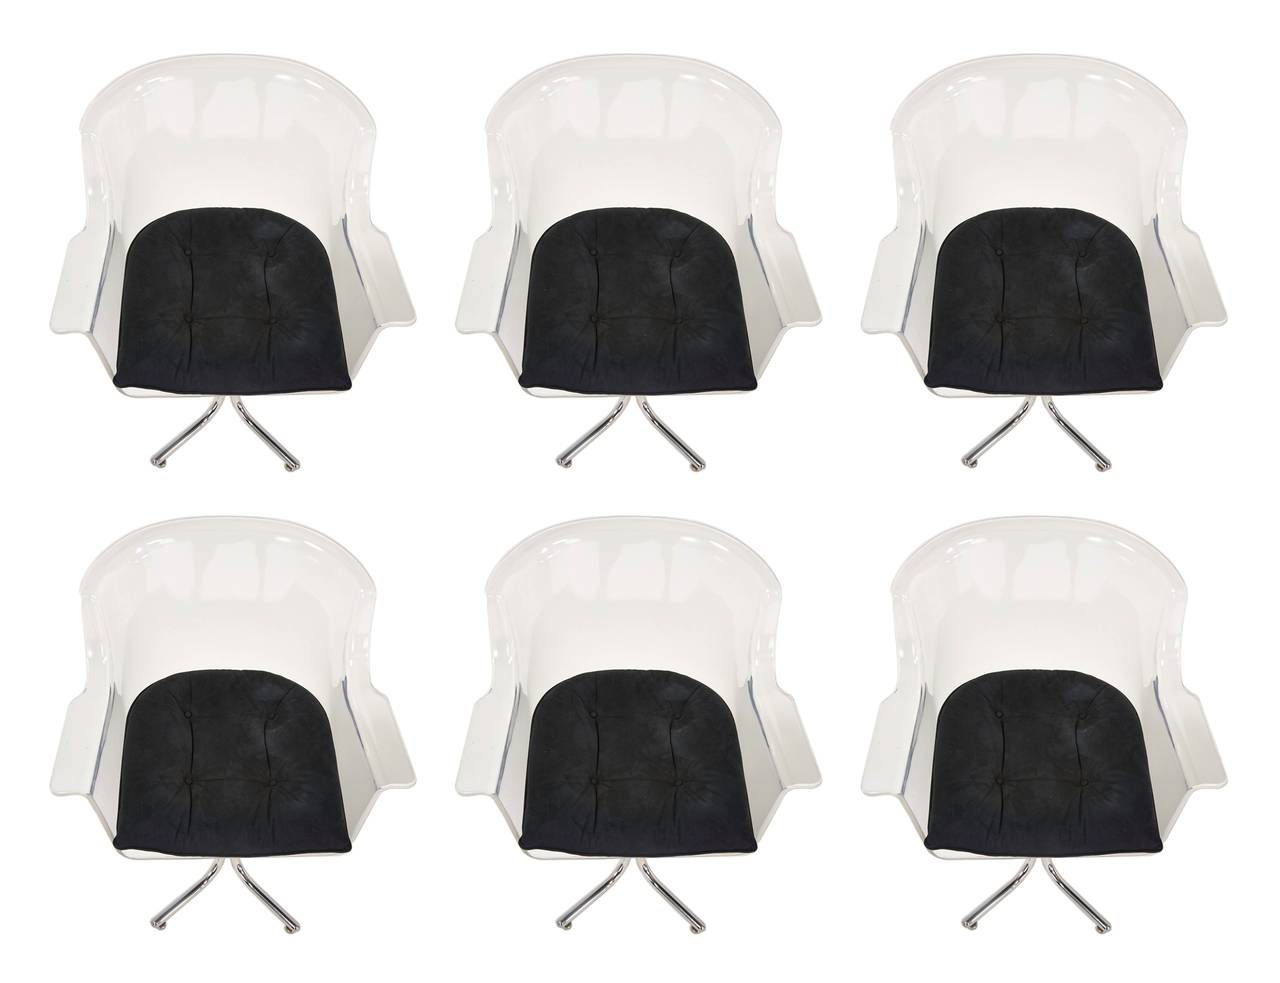 Fantastic set of six armchairs in Lucite and chrome designed by Leon Rosen and manufactured for Pace collection. The chairs have beautiful lines, the Lucite and chrome show well, the suede seats are in good condition and they may need to be